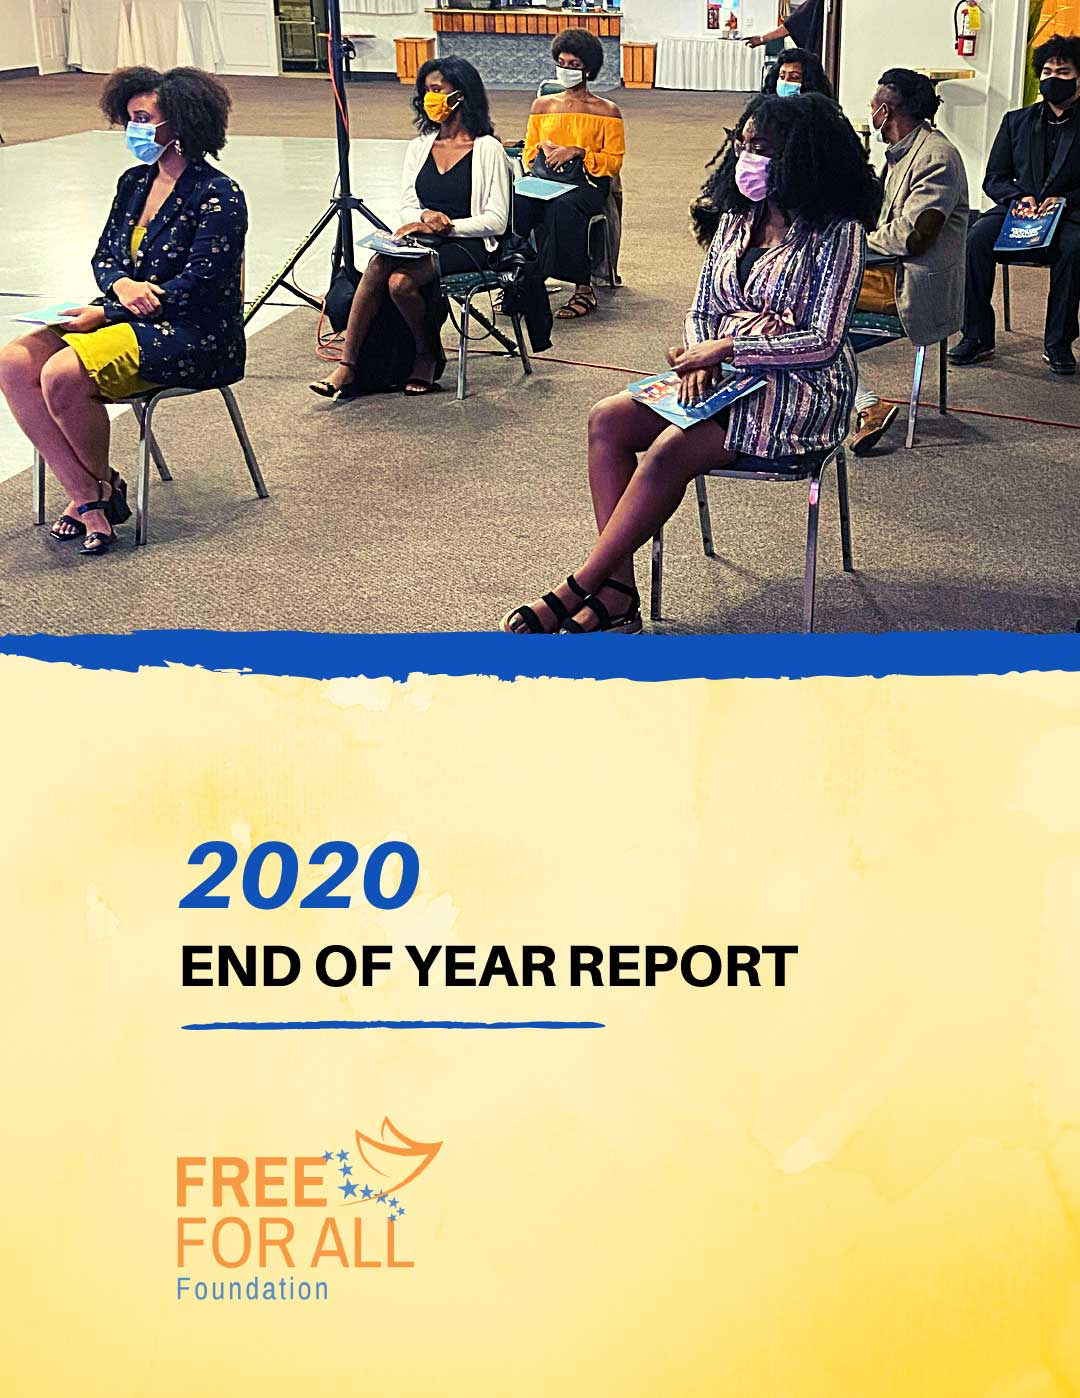 2020 End of Year Report